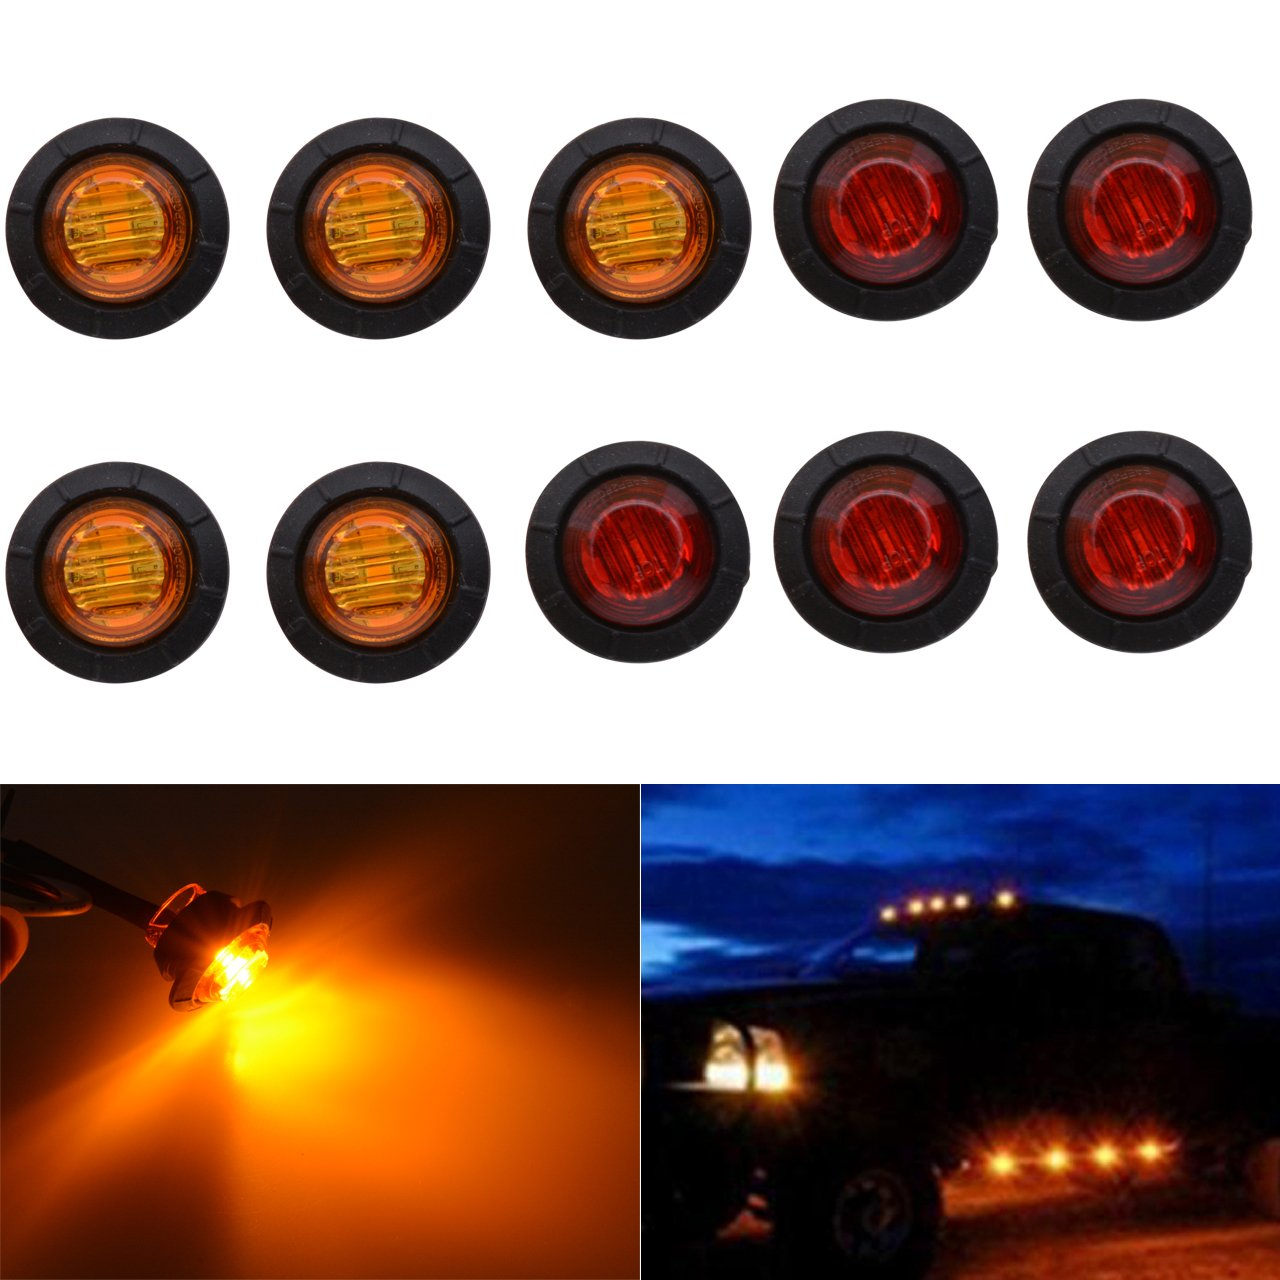 10 NEW AMBER AMBER MINI OVAL 2 LED DIODES 2 X 3//4 .75 CLEARANCE MARKER TRAILER TRUCK LIGHTS W BULLET ENDS AND STAINLESS STEEL TRIM RING